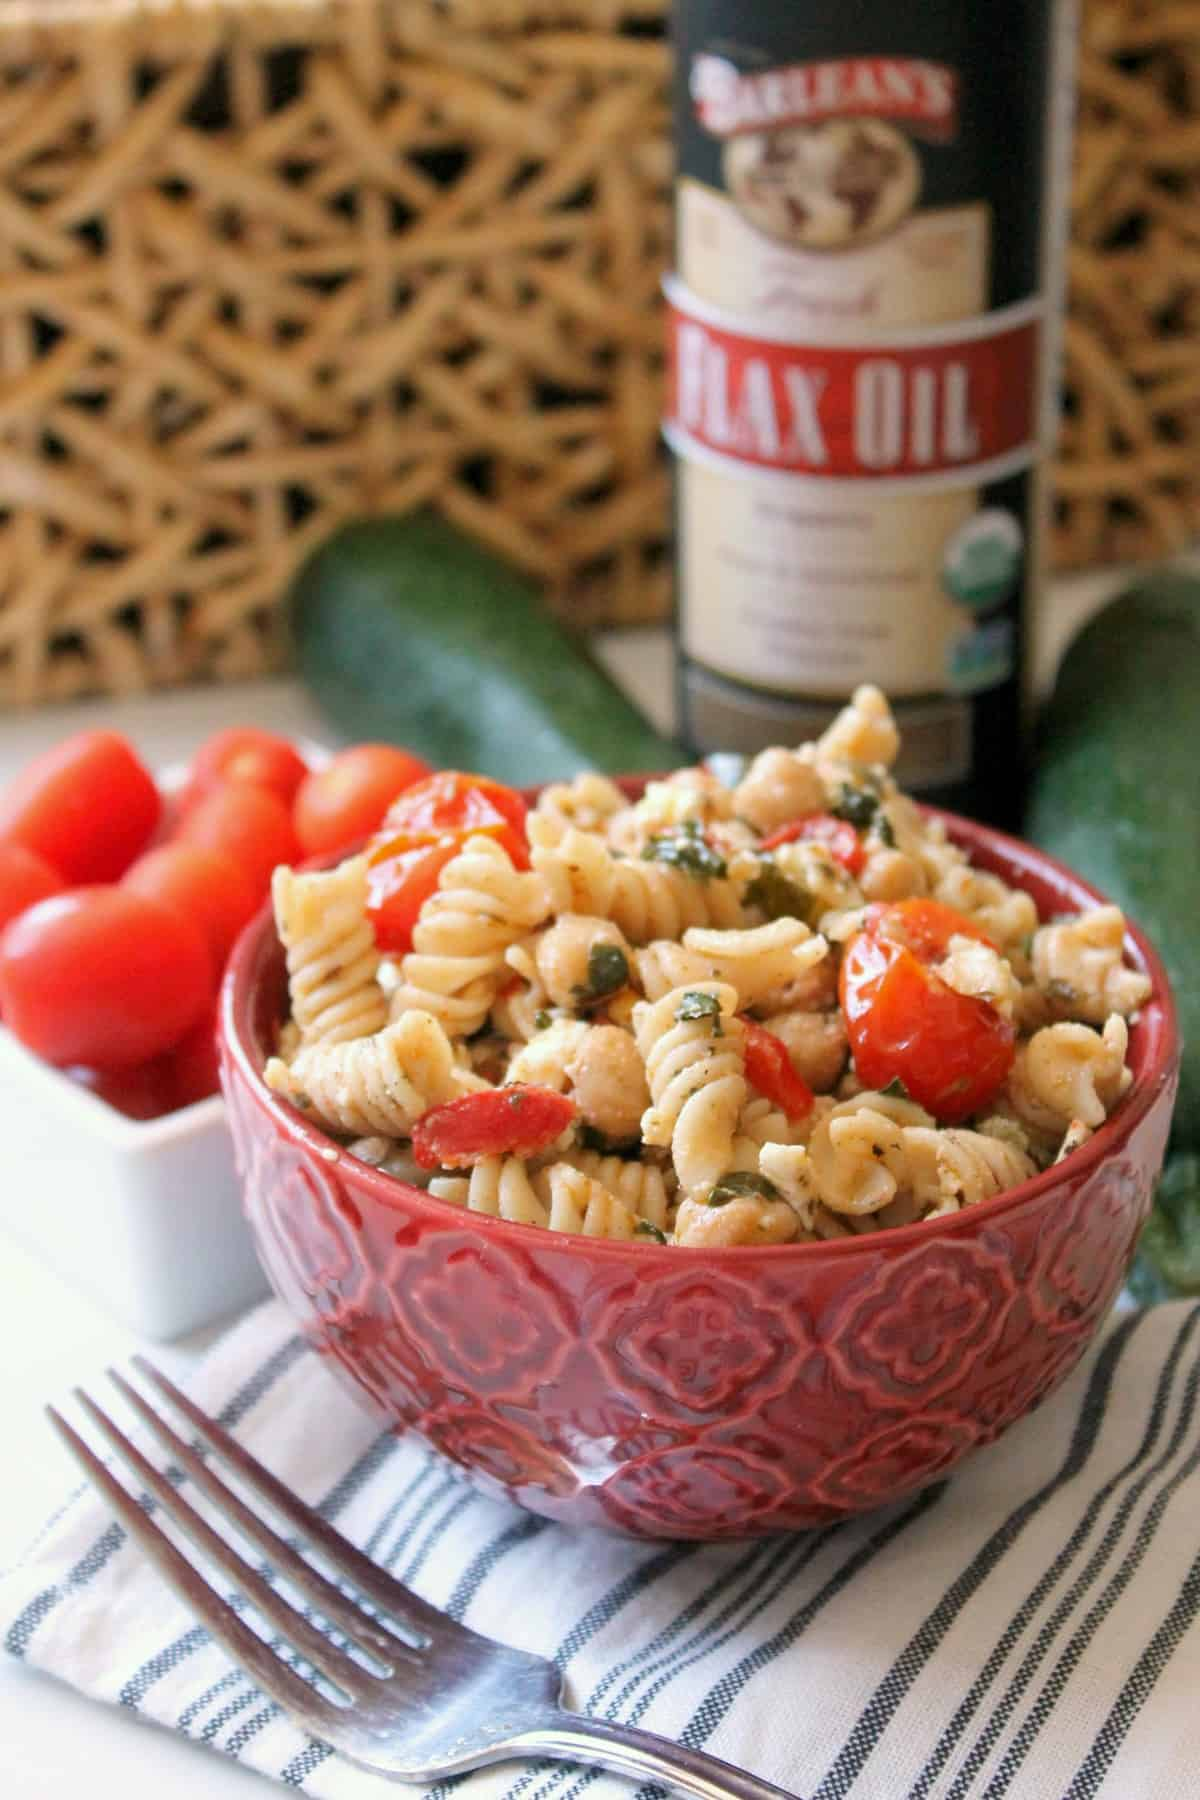 This Healthy Mediterranean Pasta Salad is filled with veggies, beans and is high in Omega-3s thanks to a flax oil dressing that pulls it all together.